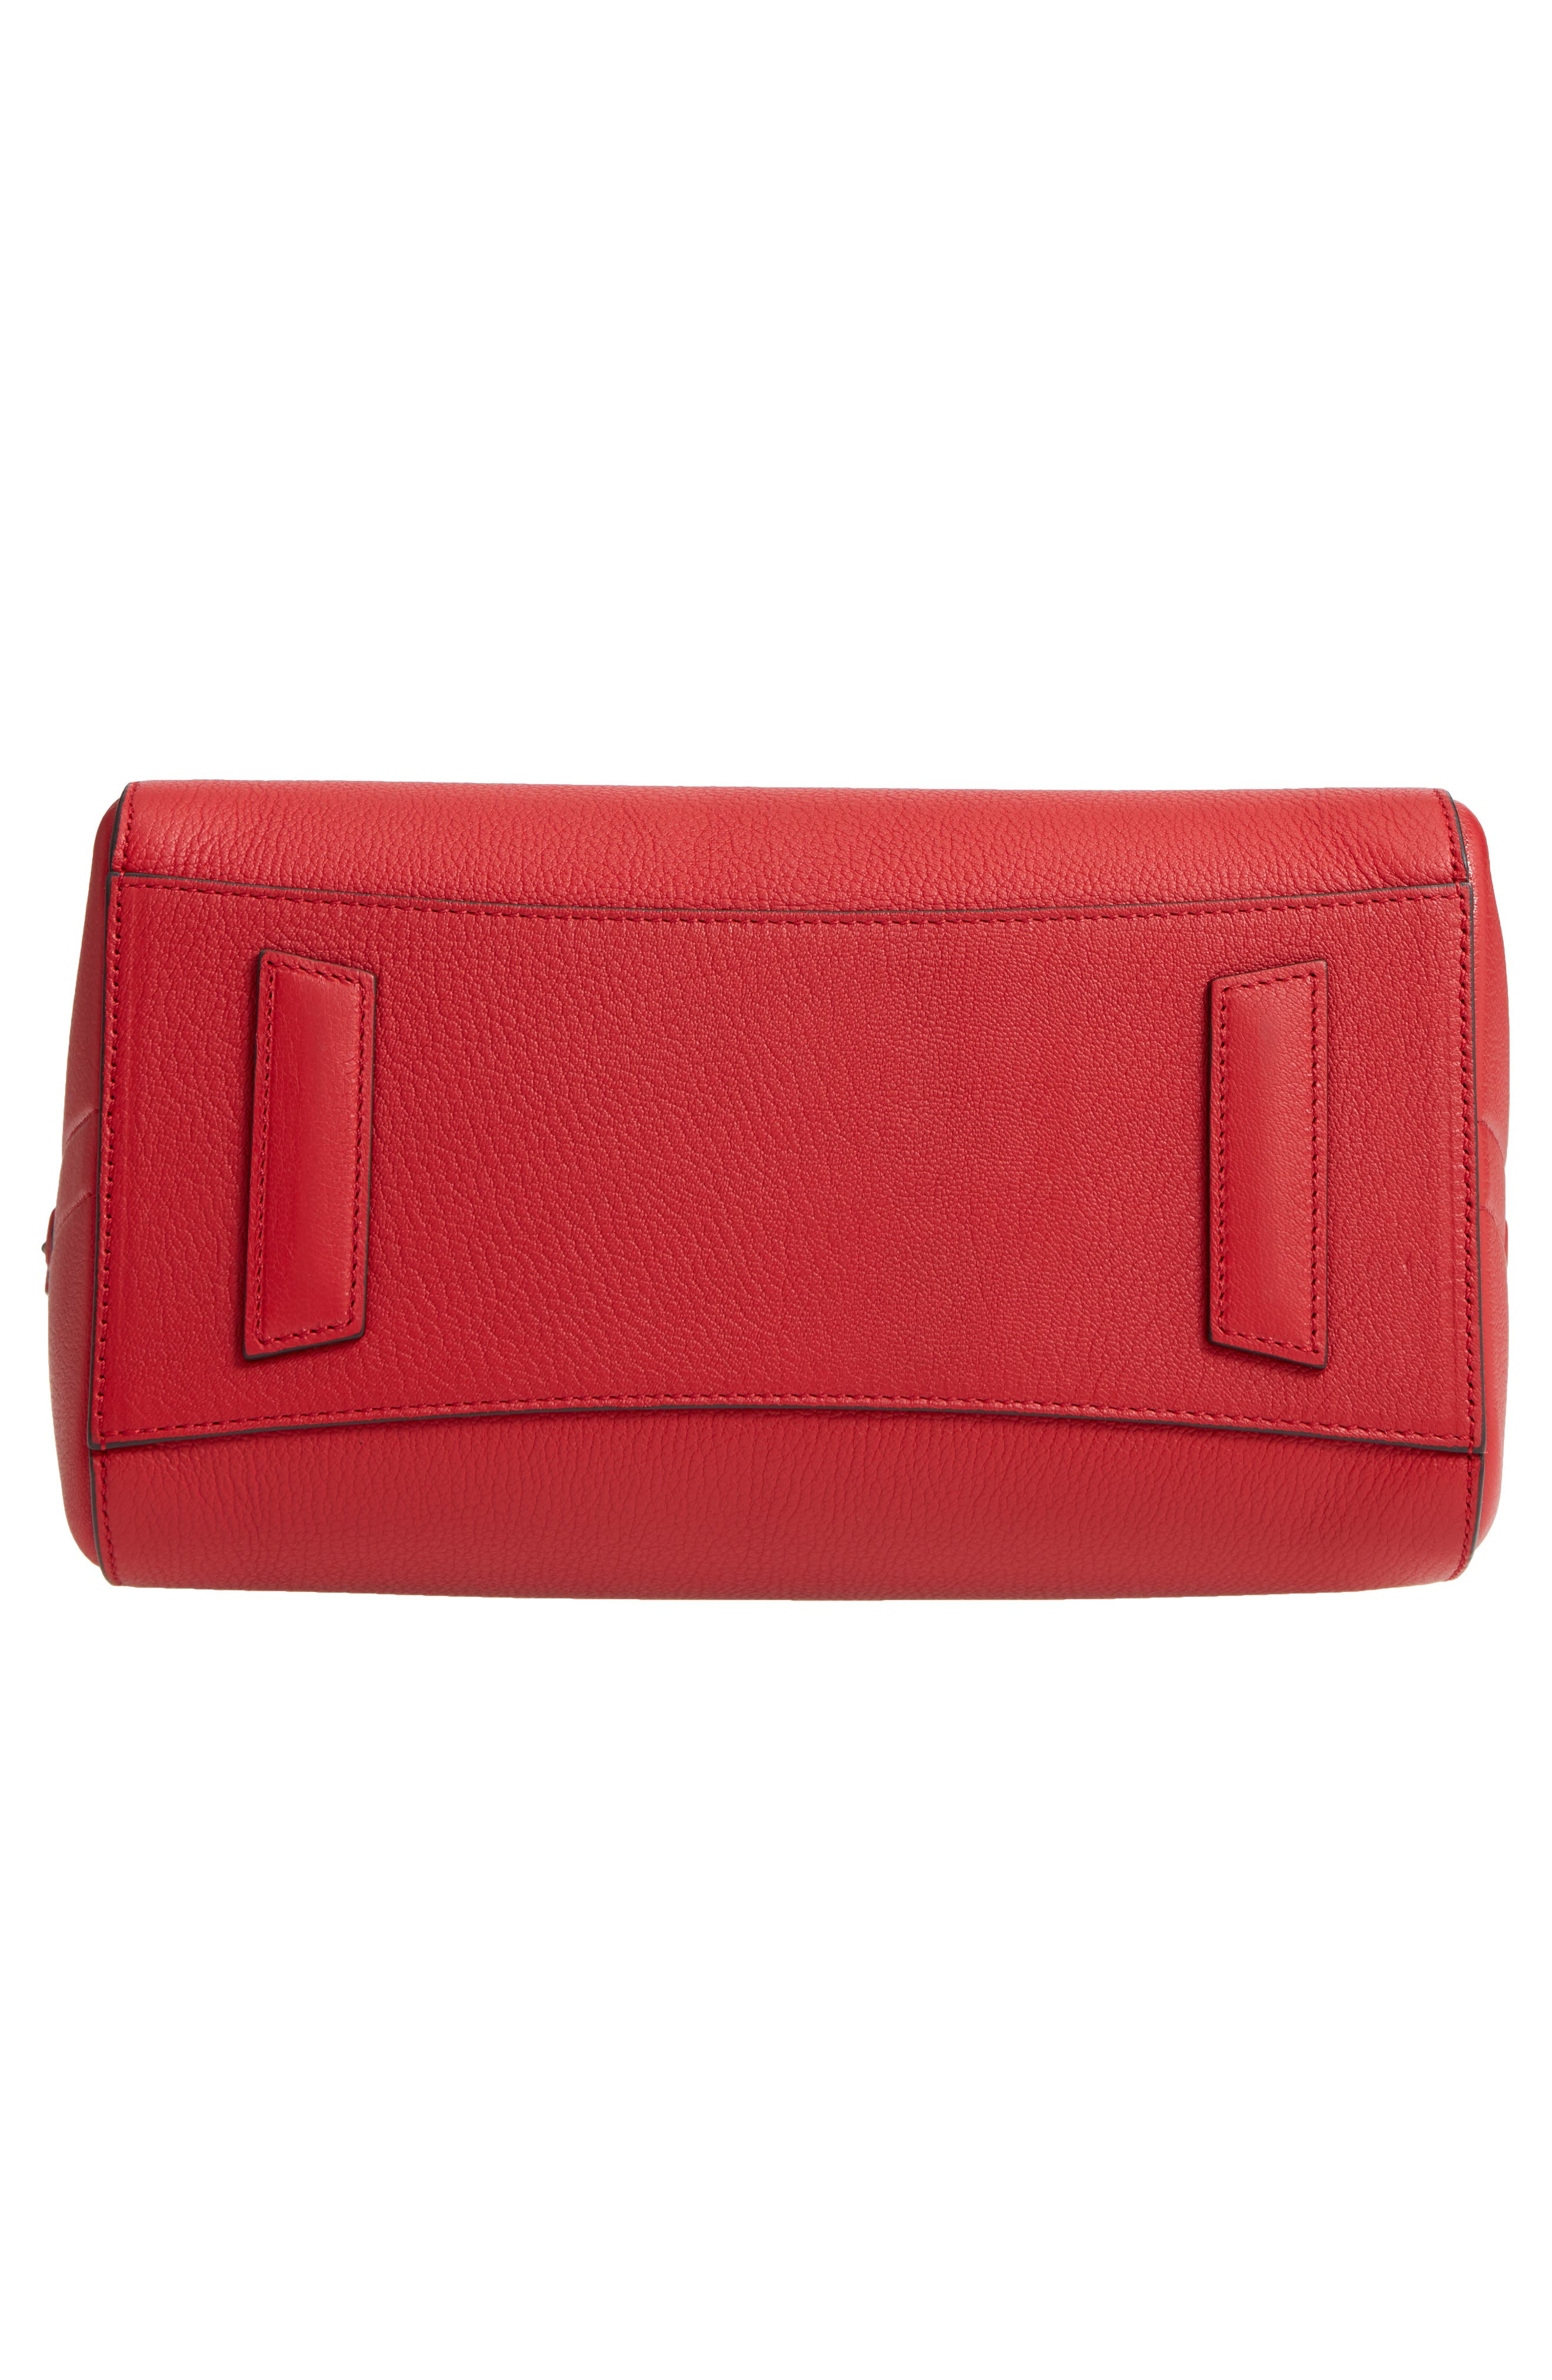 'Small Antigona' Leather Satchel,                             Alternate thumbnail 5, color,                             Bright Red